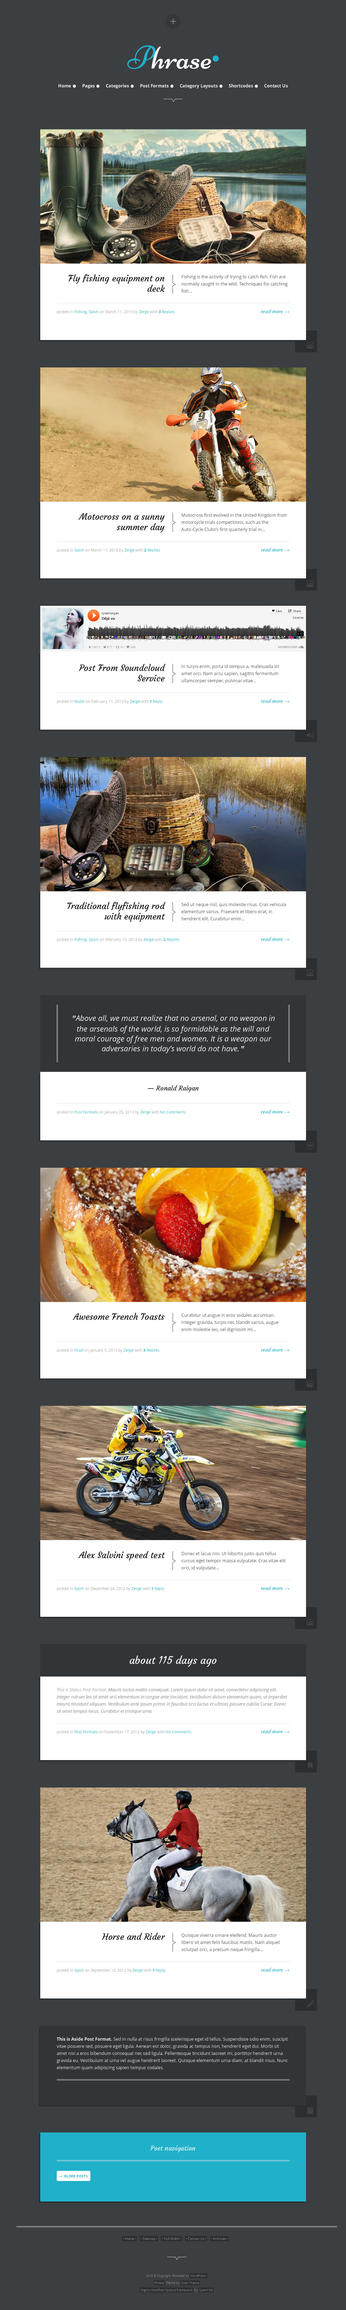 Phrase - Responsive WordPress Blog Theme by ZERGEV